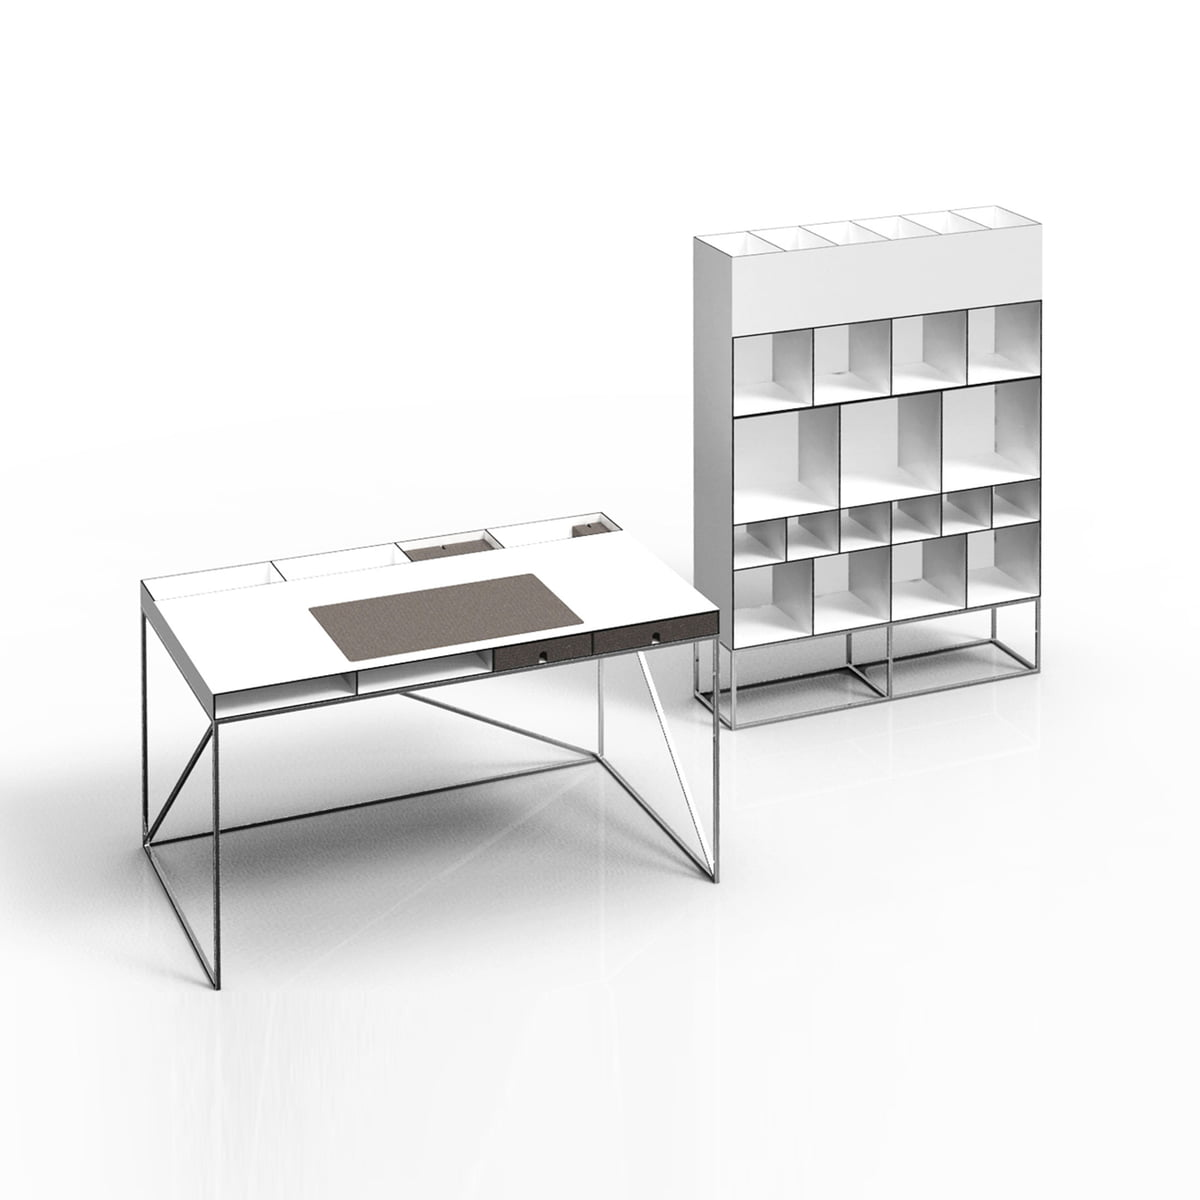 wogg 54 desk in the shop. Black Bedroom Furniture Sets. Home Design Ideas